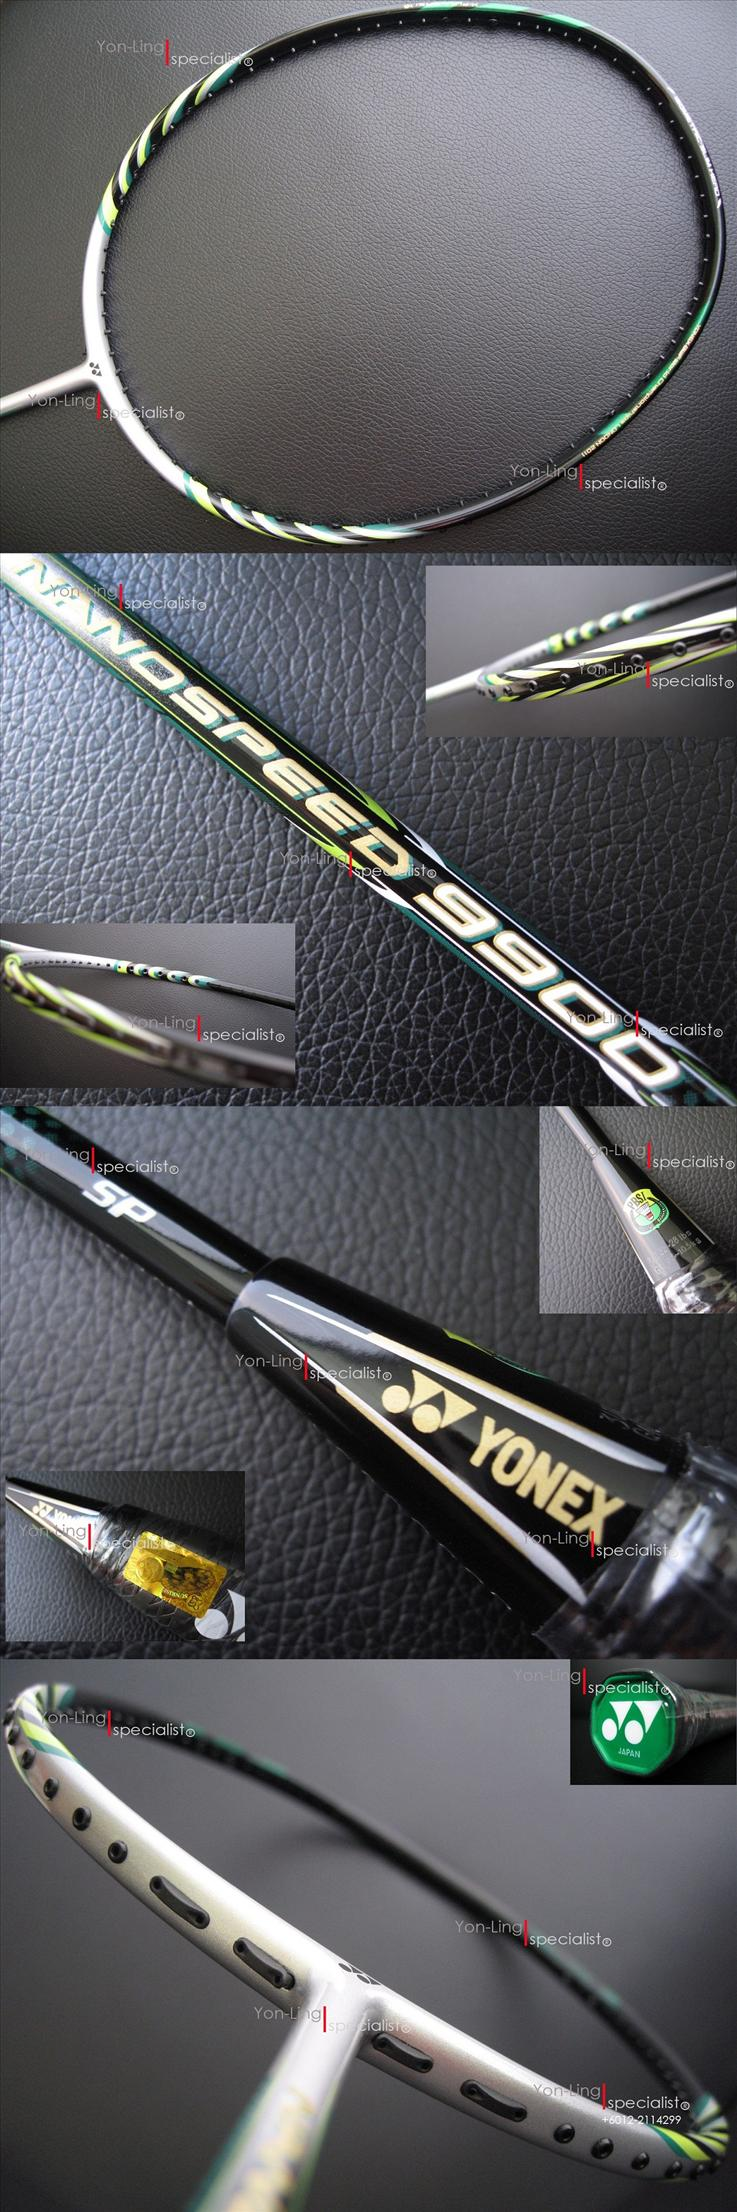 Yonex NANOSPEED 9900LTD Green Version